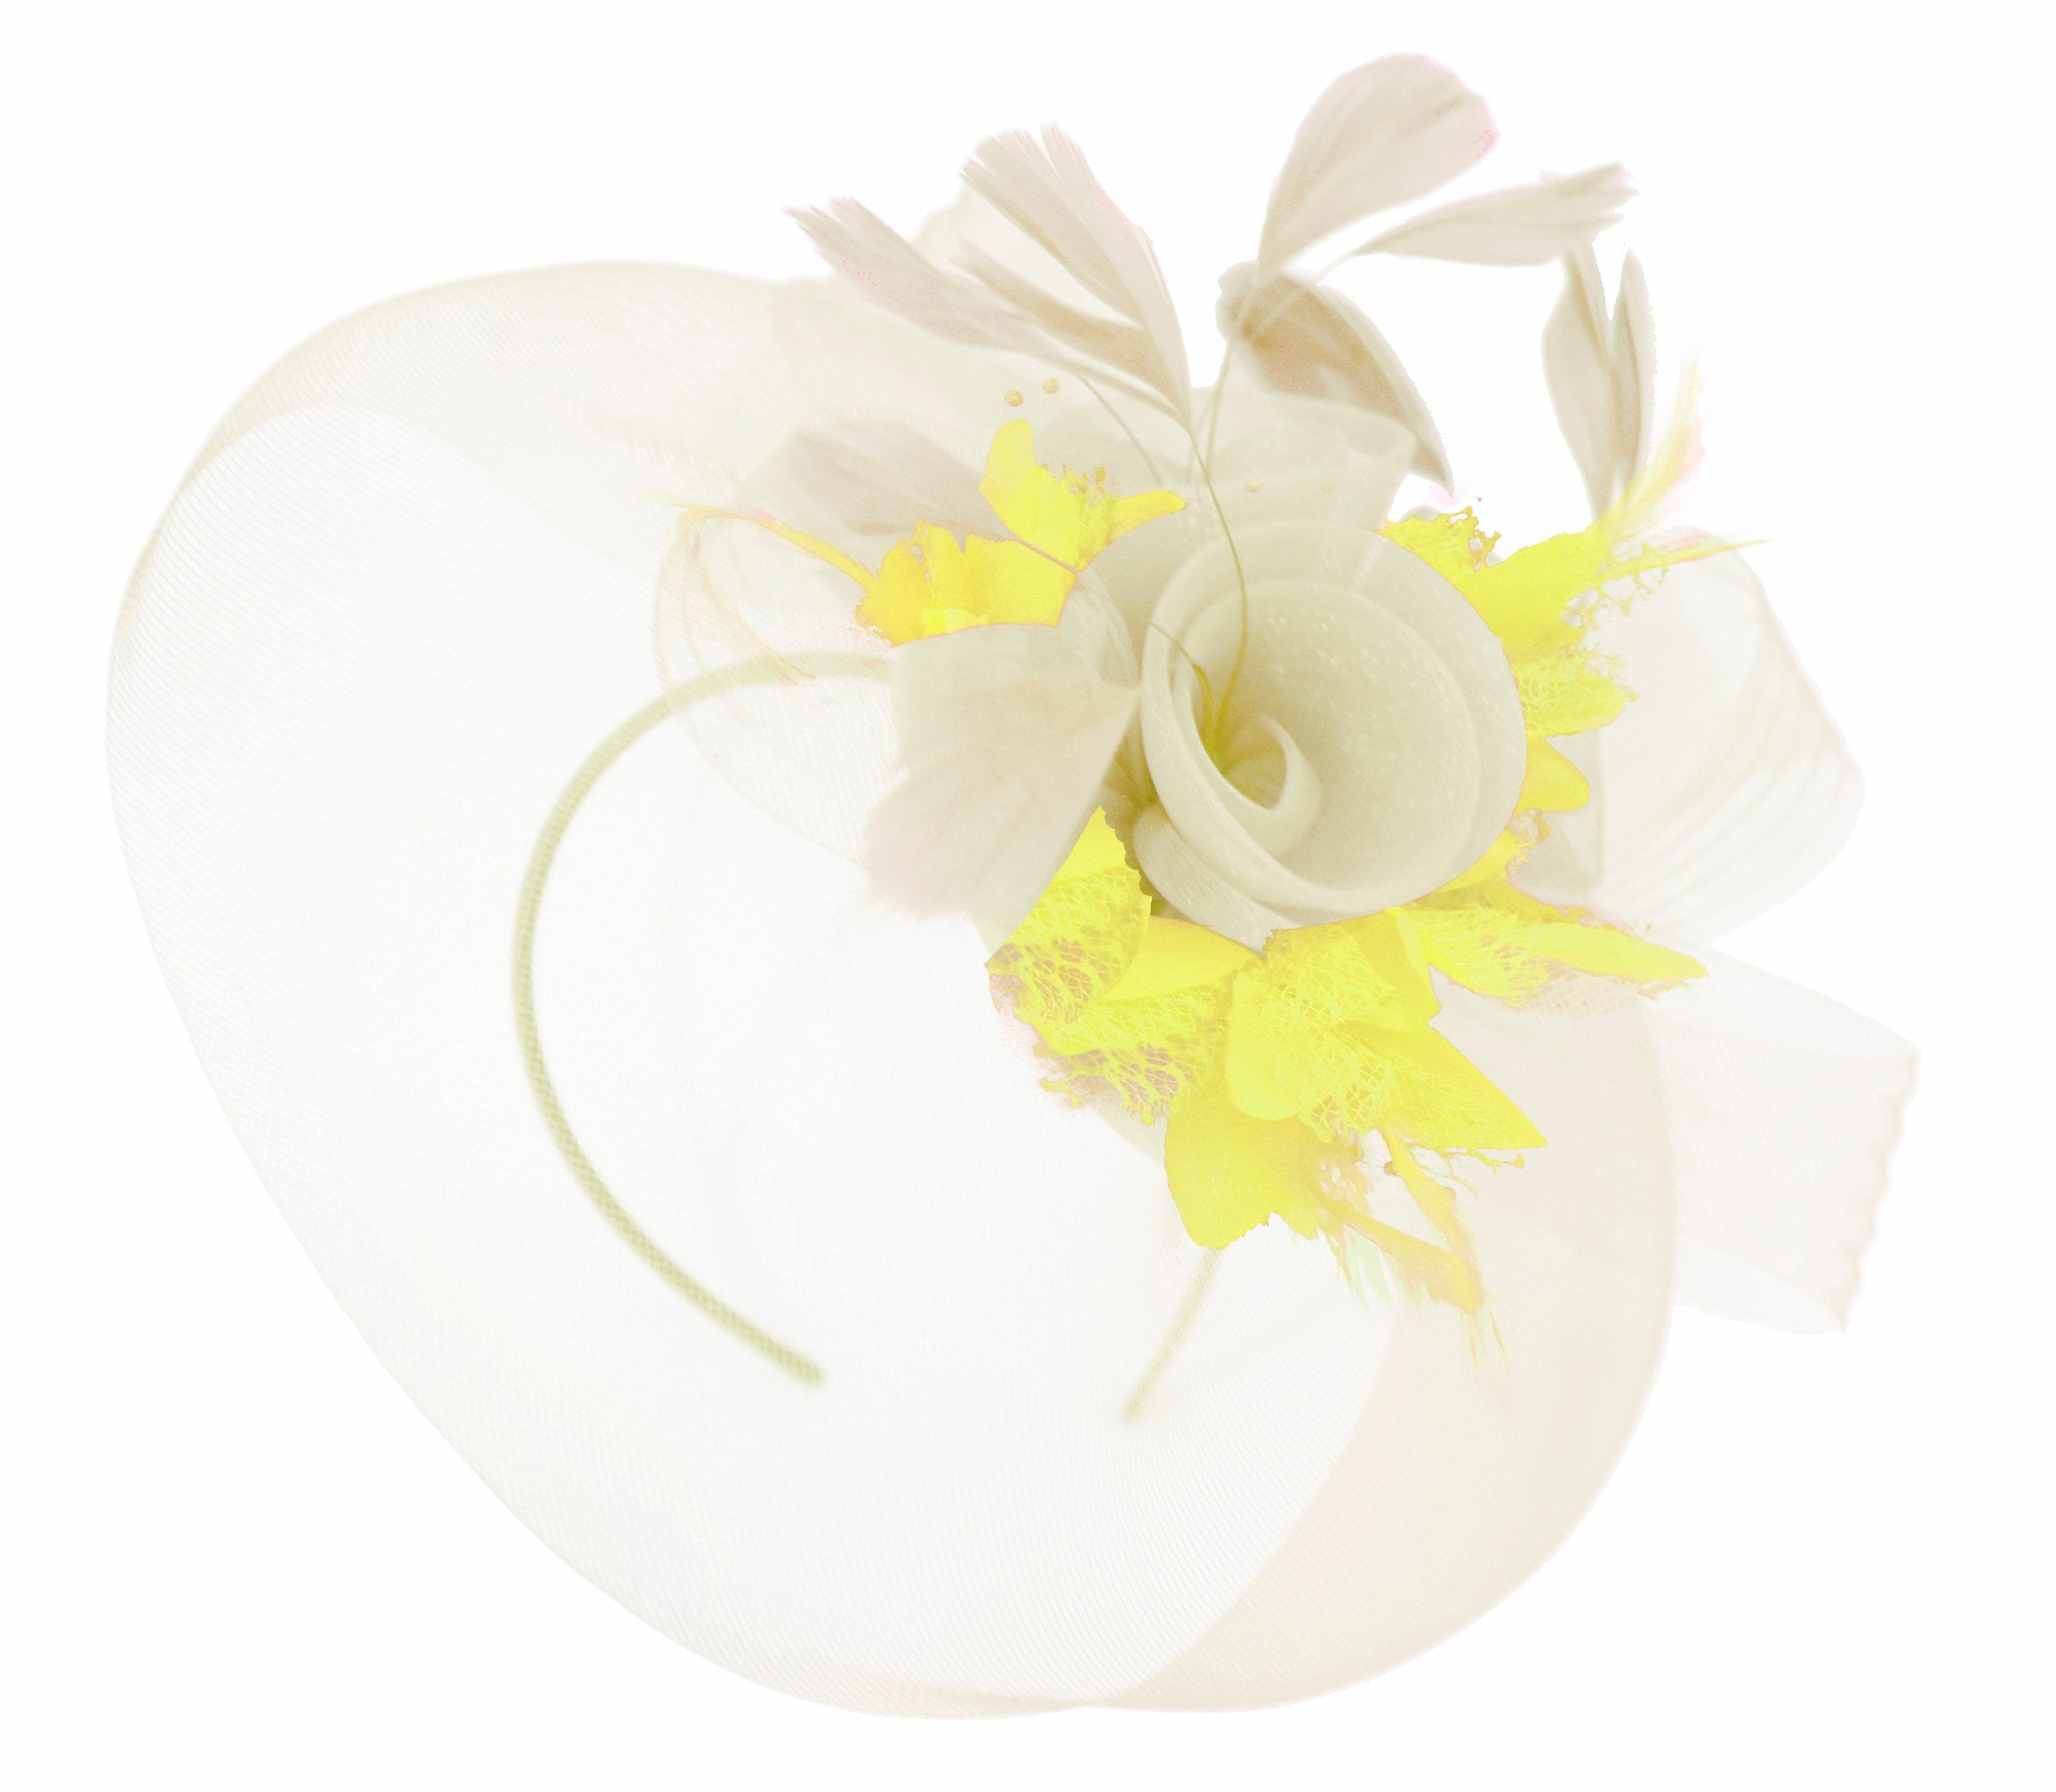 Caprilite Cream and Yellow Fascinator on Headband Veil UK Wedding Ascot Races Hatinator Women